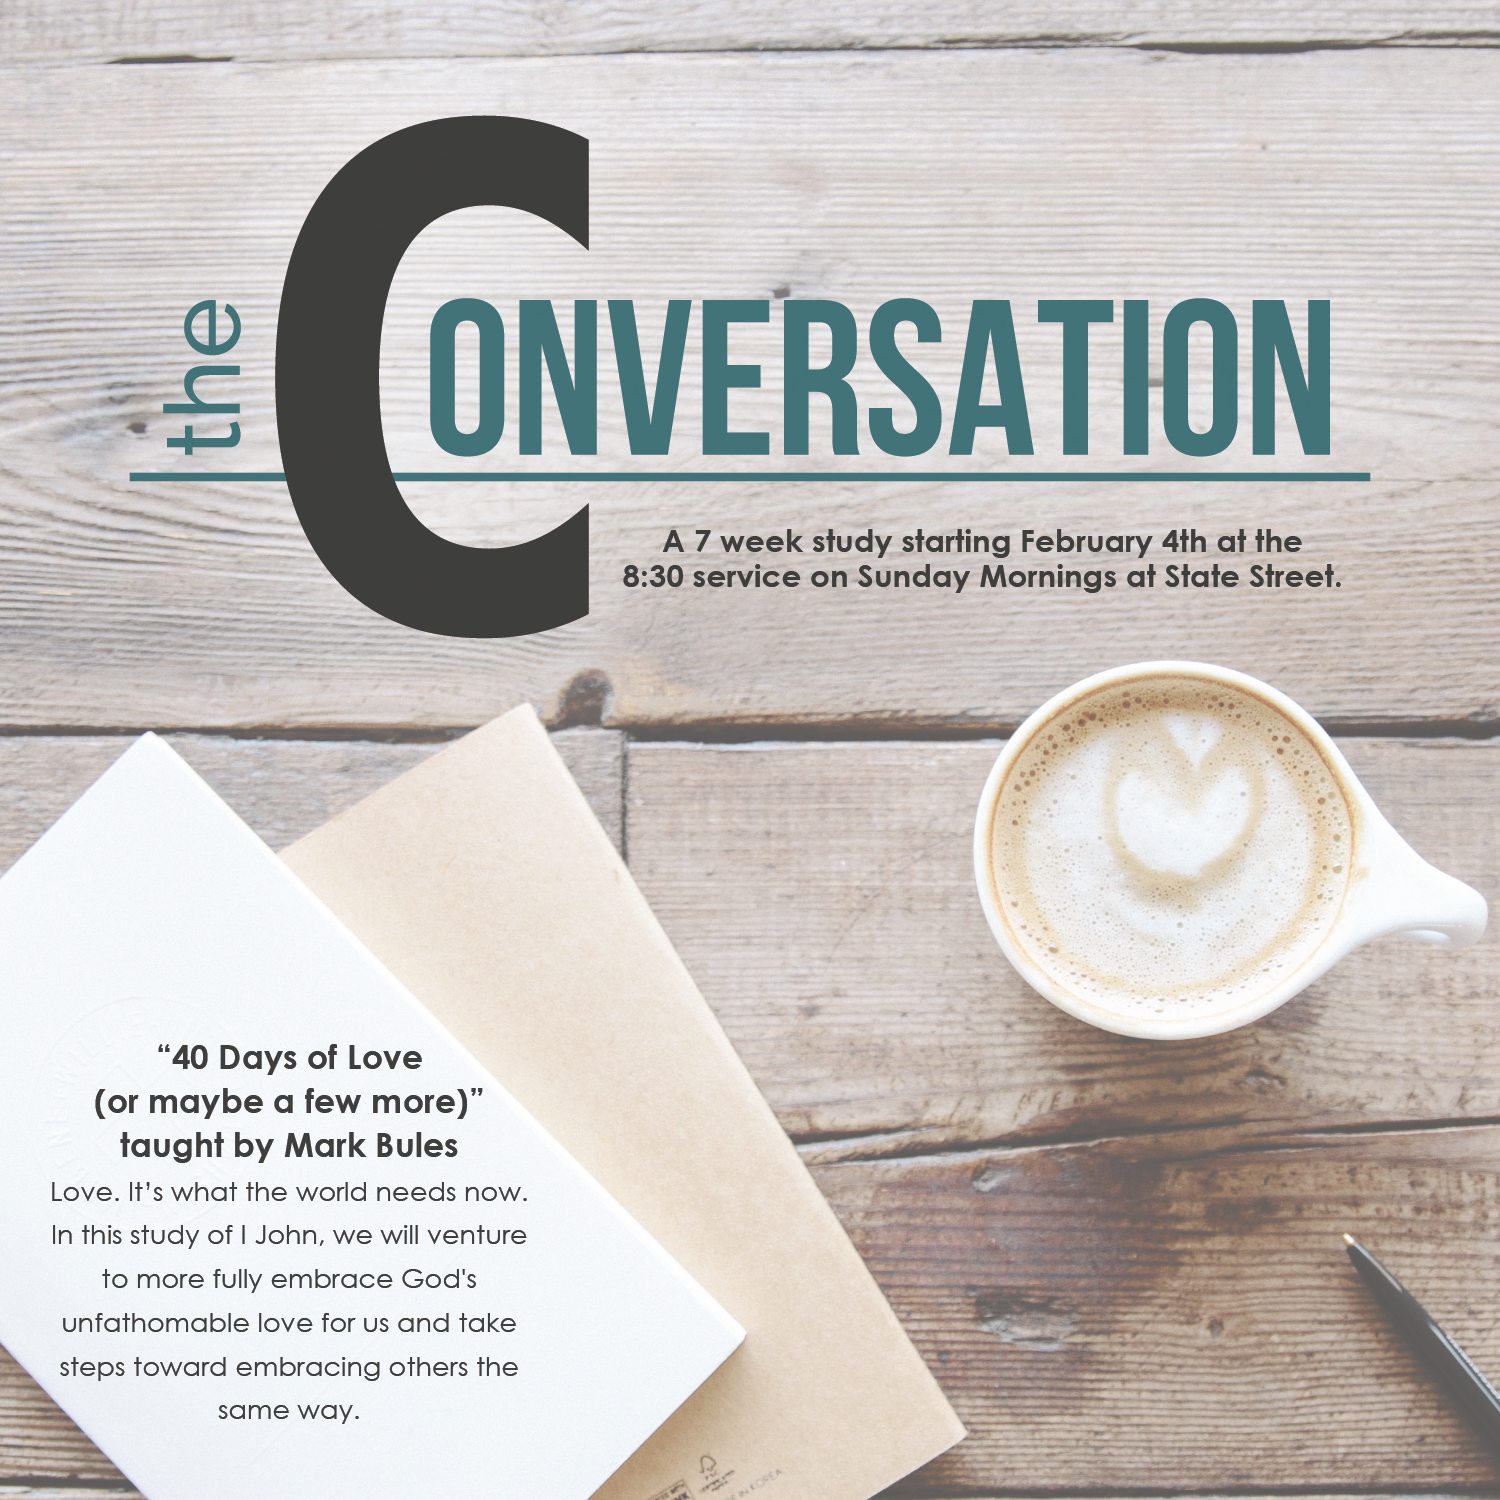 The conversation flyer 01